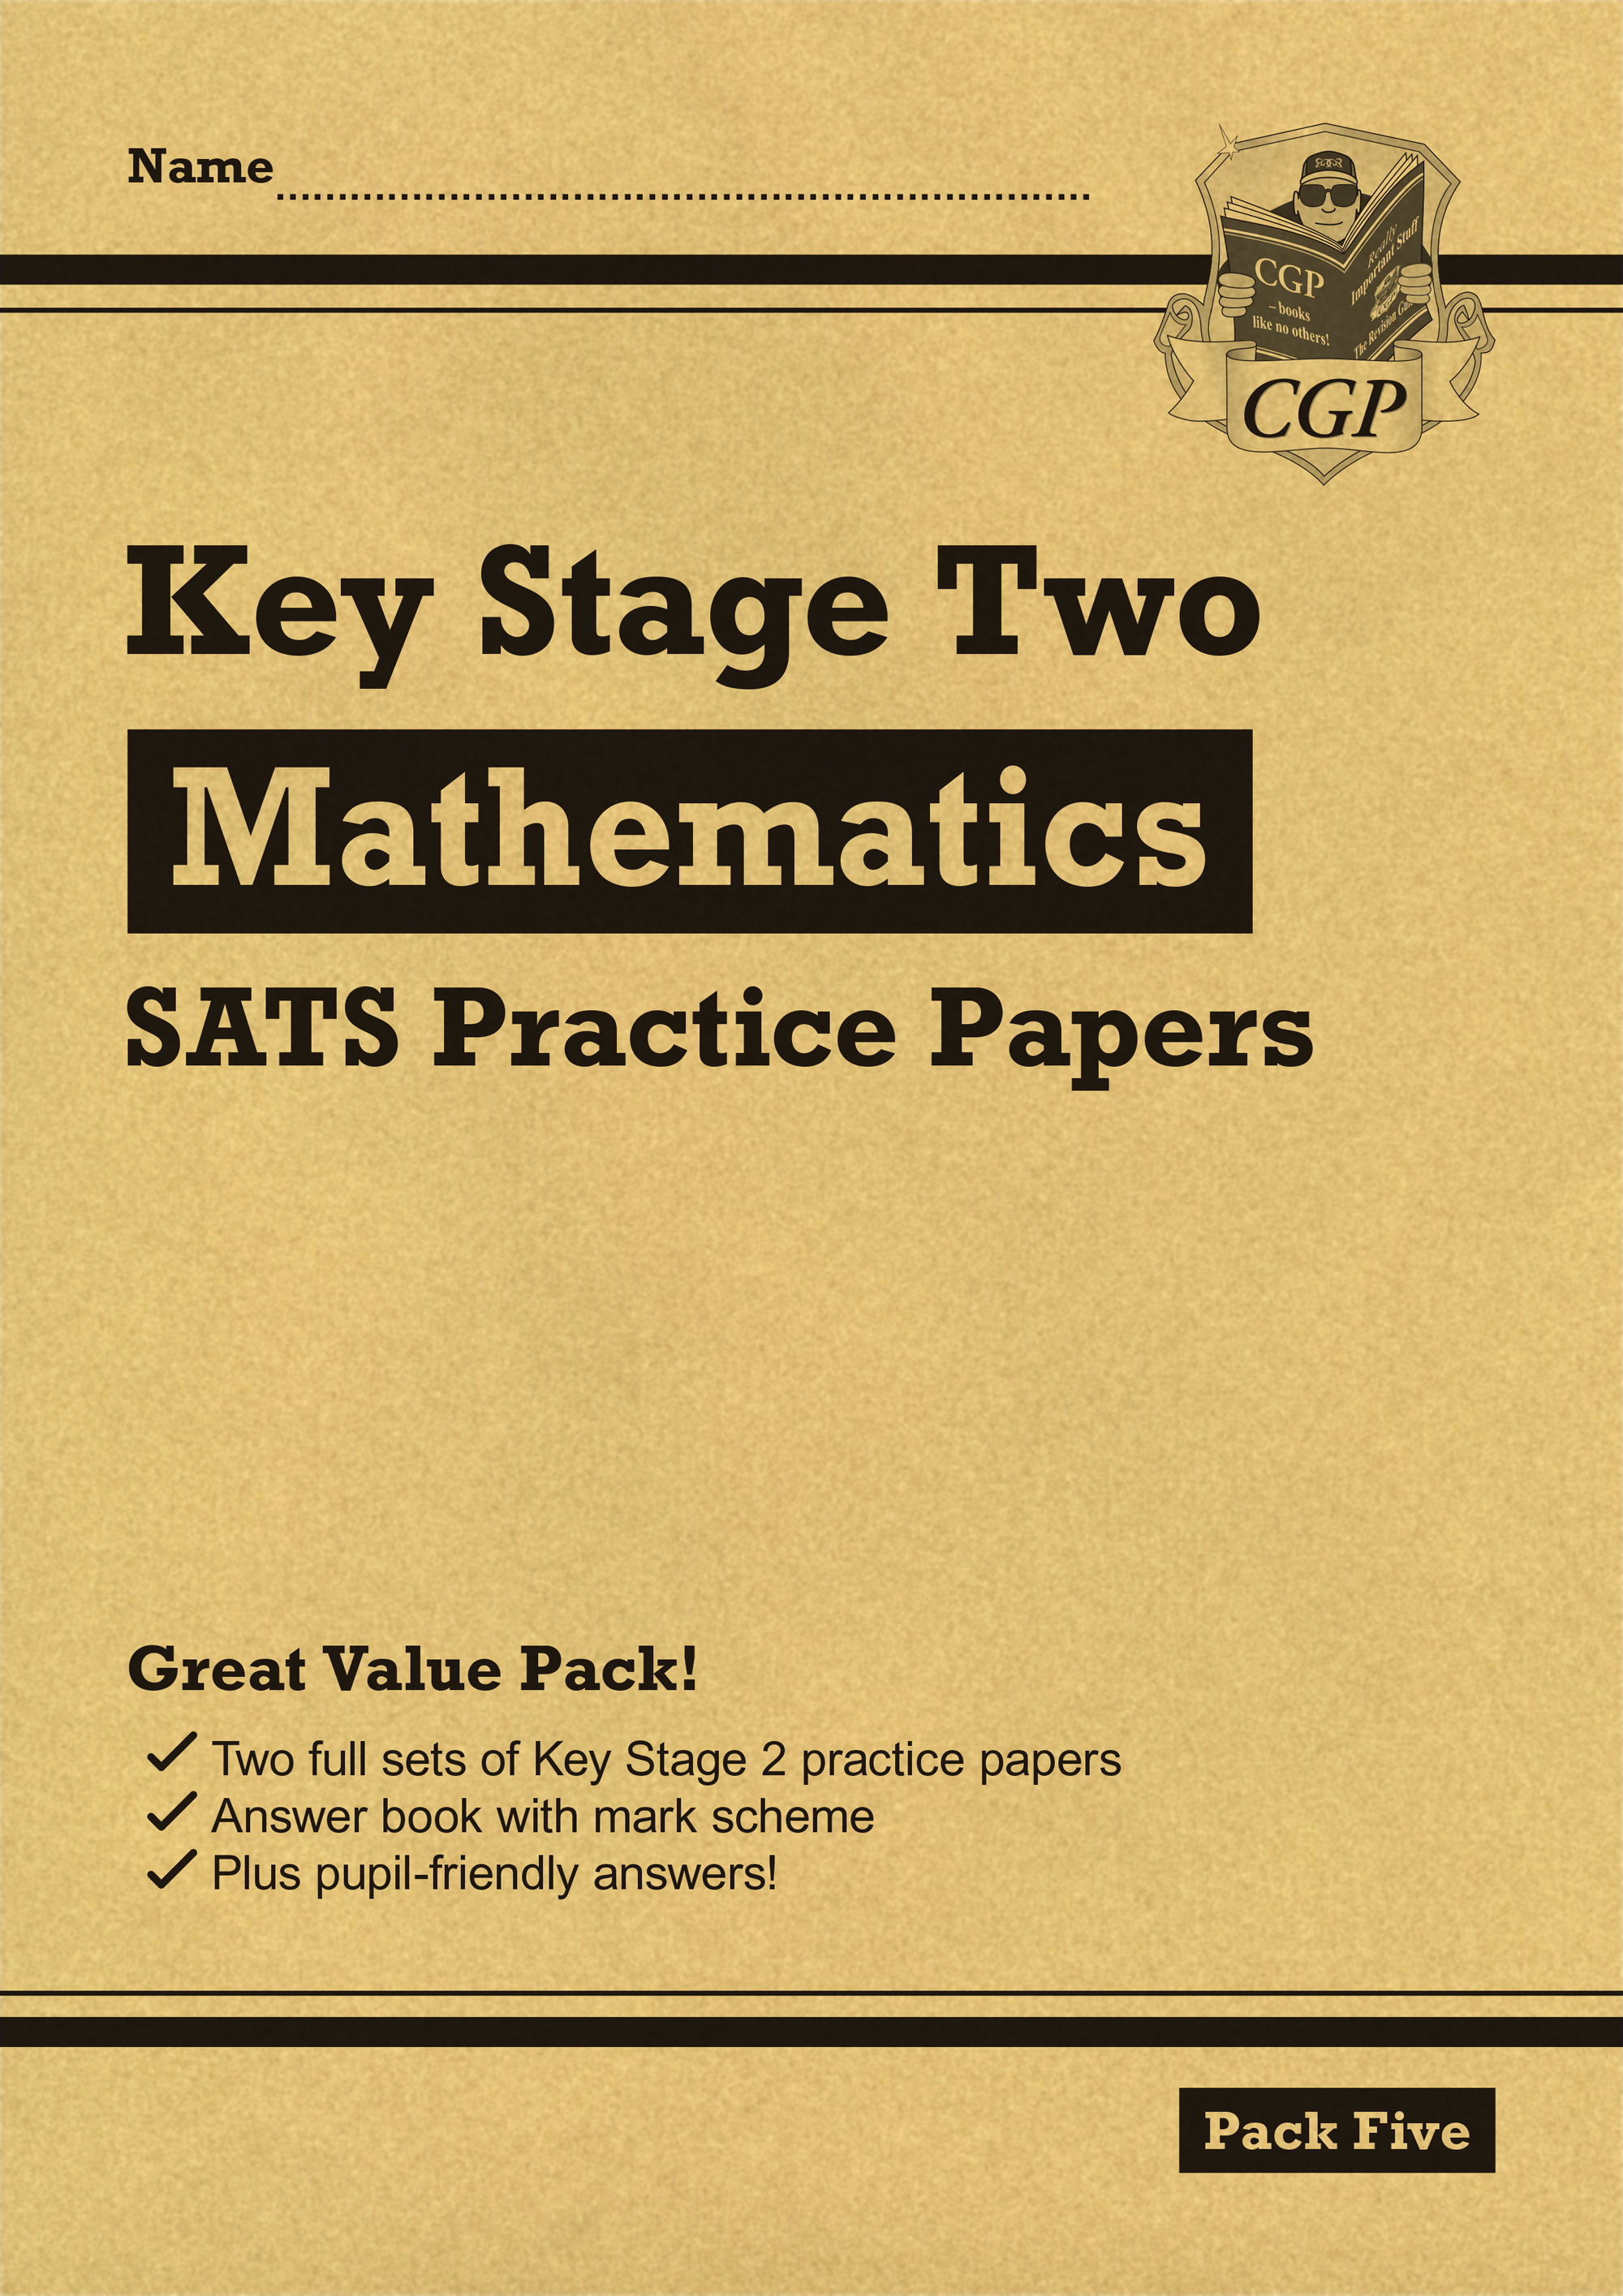 MHP25 - New KS2 Maths SATS Practice Papers: Pack 5 (for the 2019 tests)